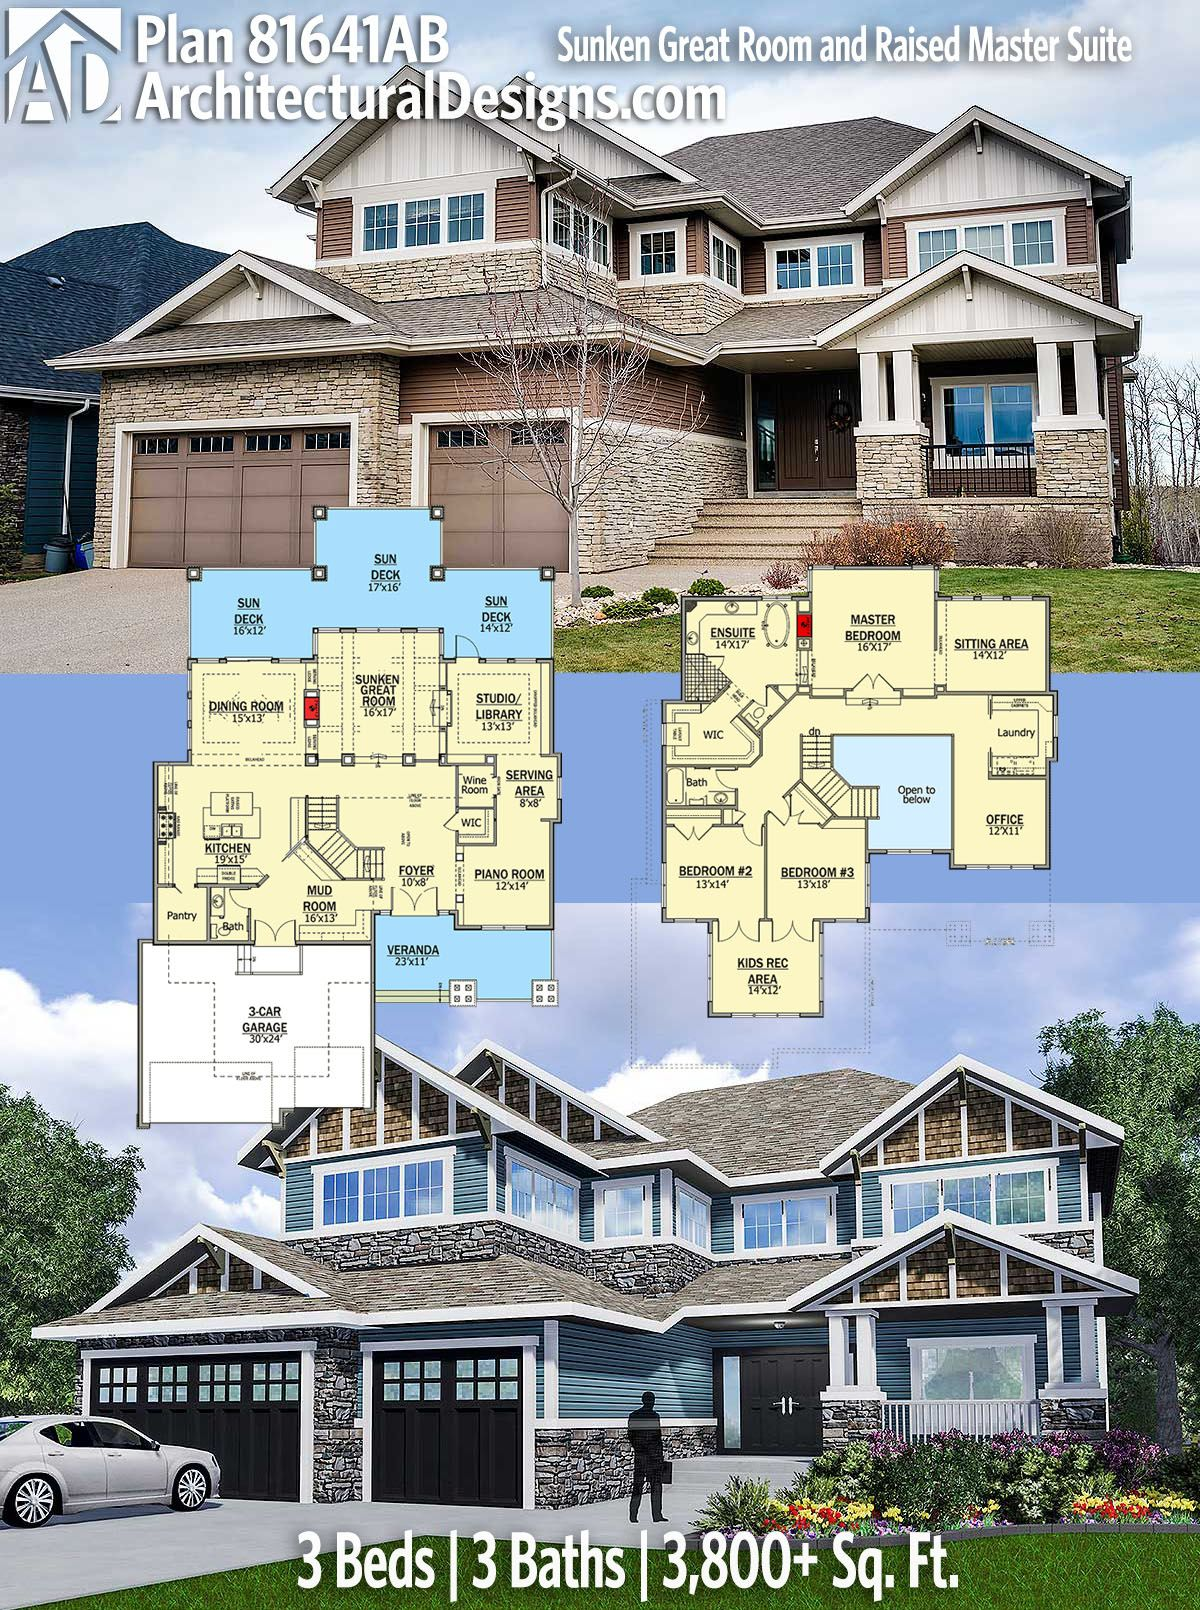 Architectural Designs Craftsman House Plan 81641AB gives